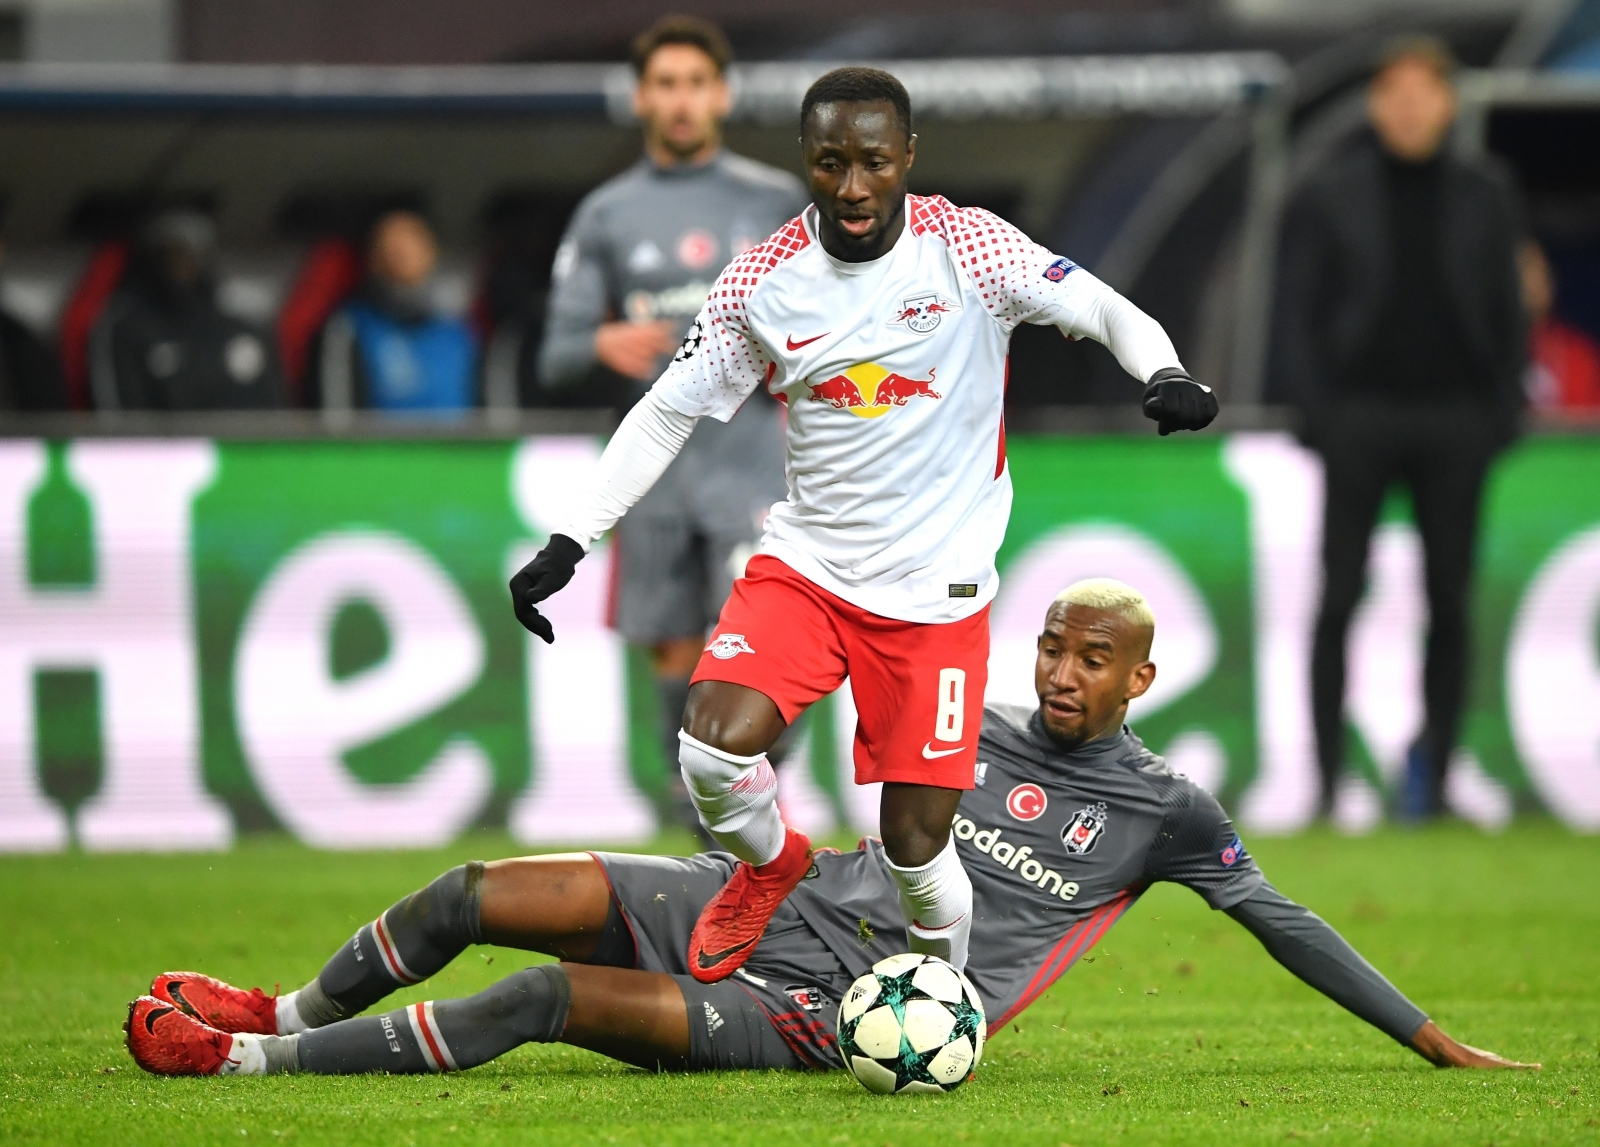 'Spend A Little Bit Extra': Jan Molby Says Bringing Naby